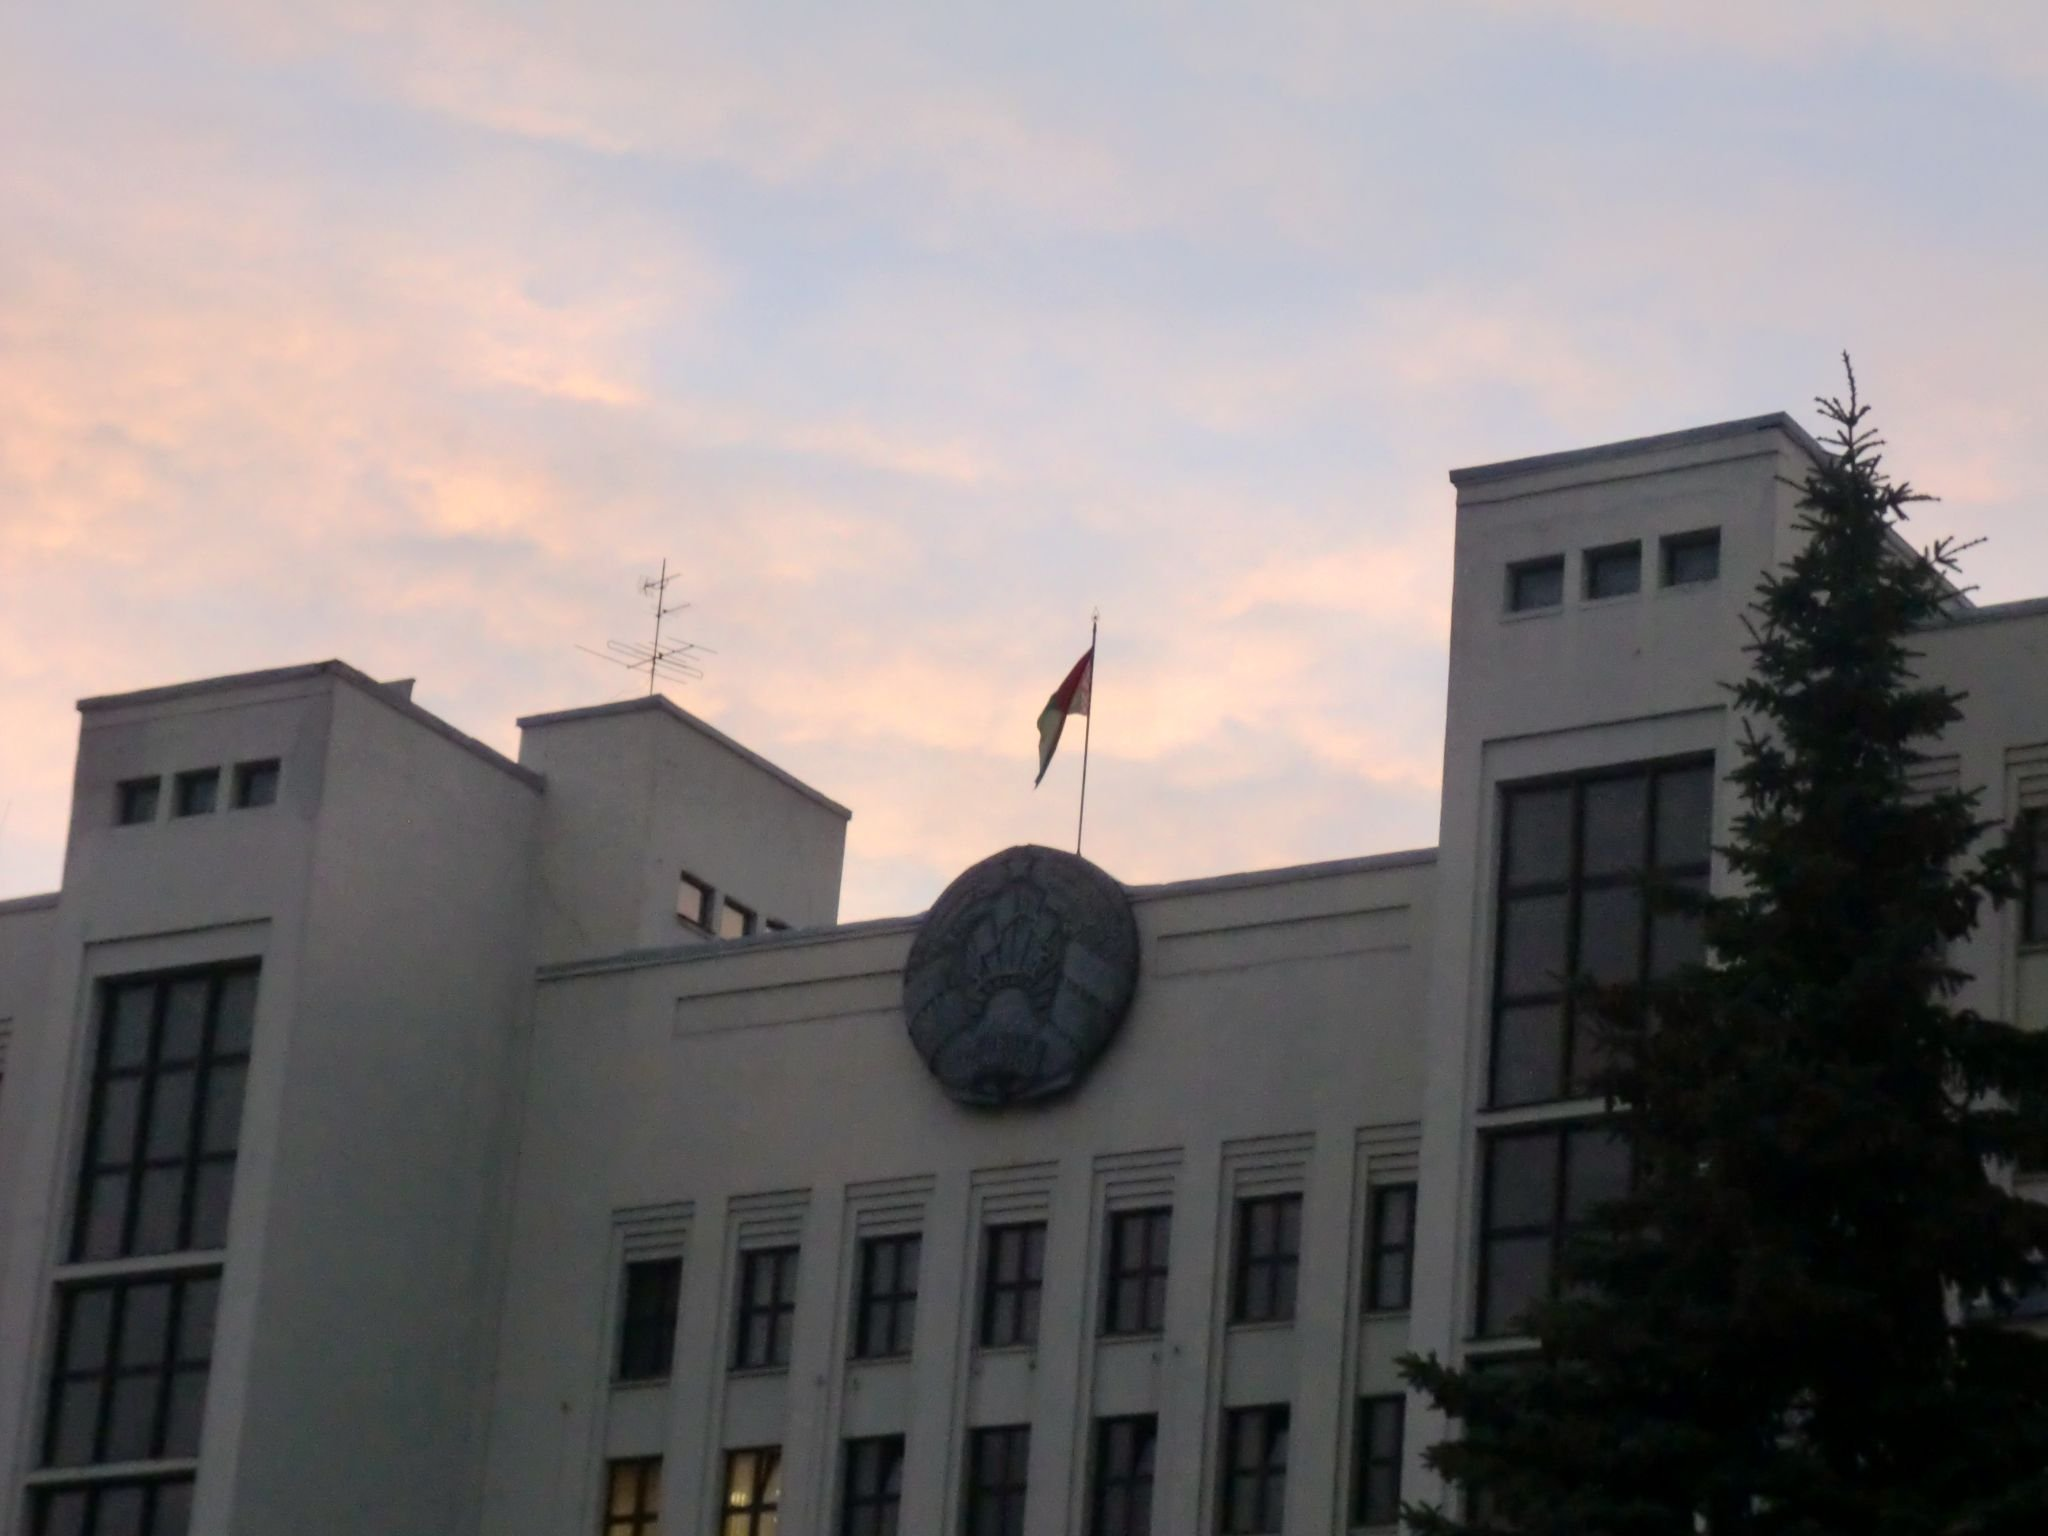 Minsk institutions 4 - Minsk, 1 amazing city you have to see